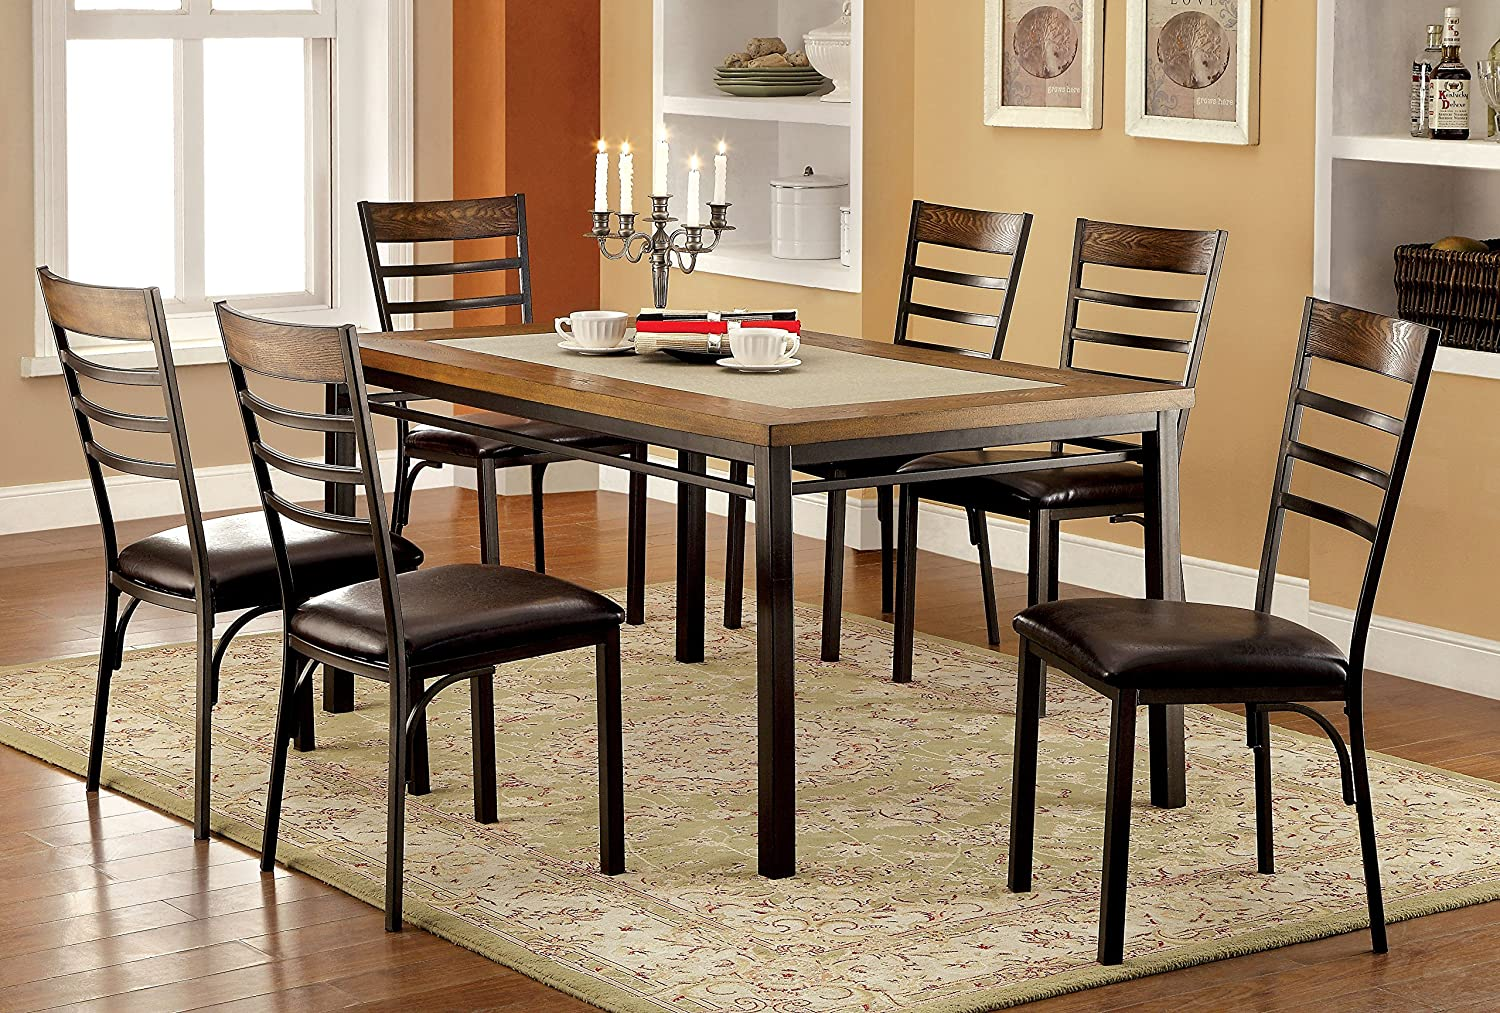 Amazoncom Furniture Of America Naga Industrial Dining Table - Industrial dining room chairs